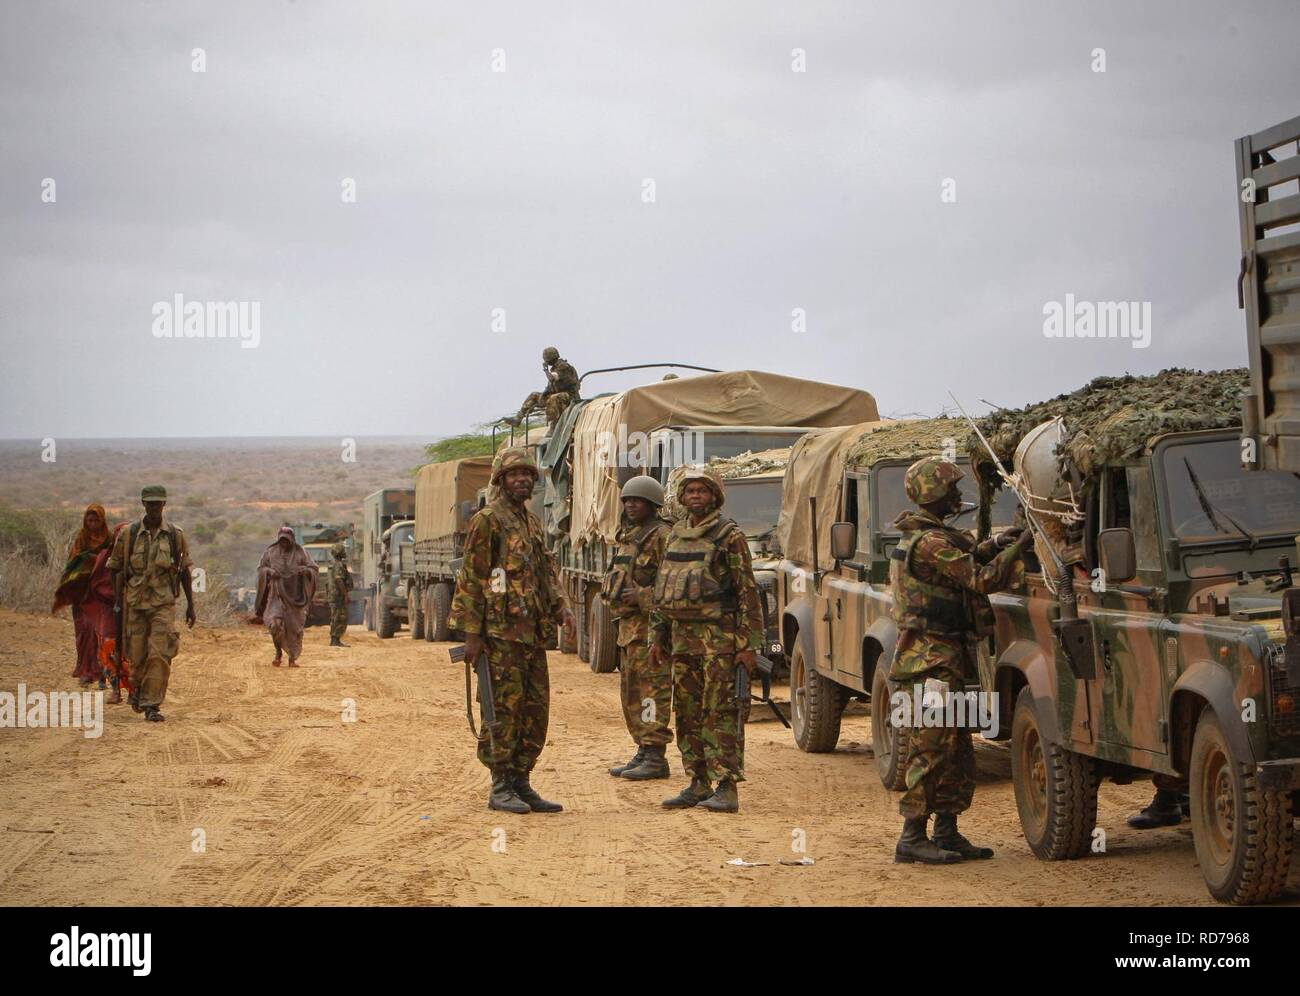 Kismayo Stock Photos & Kismayo Stock Images - Alamy